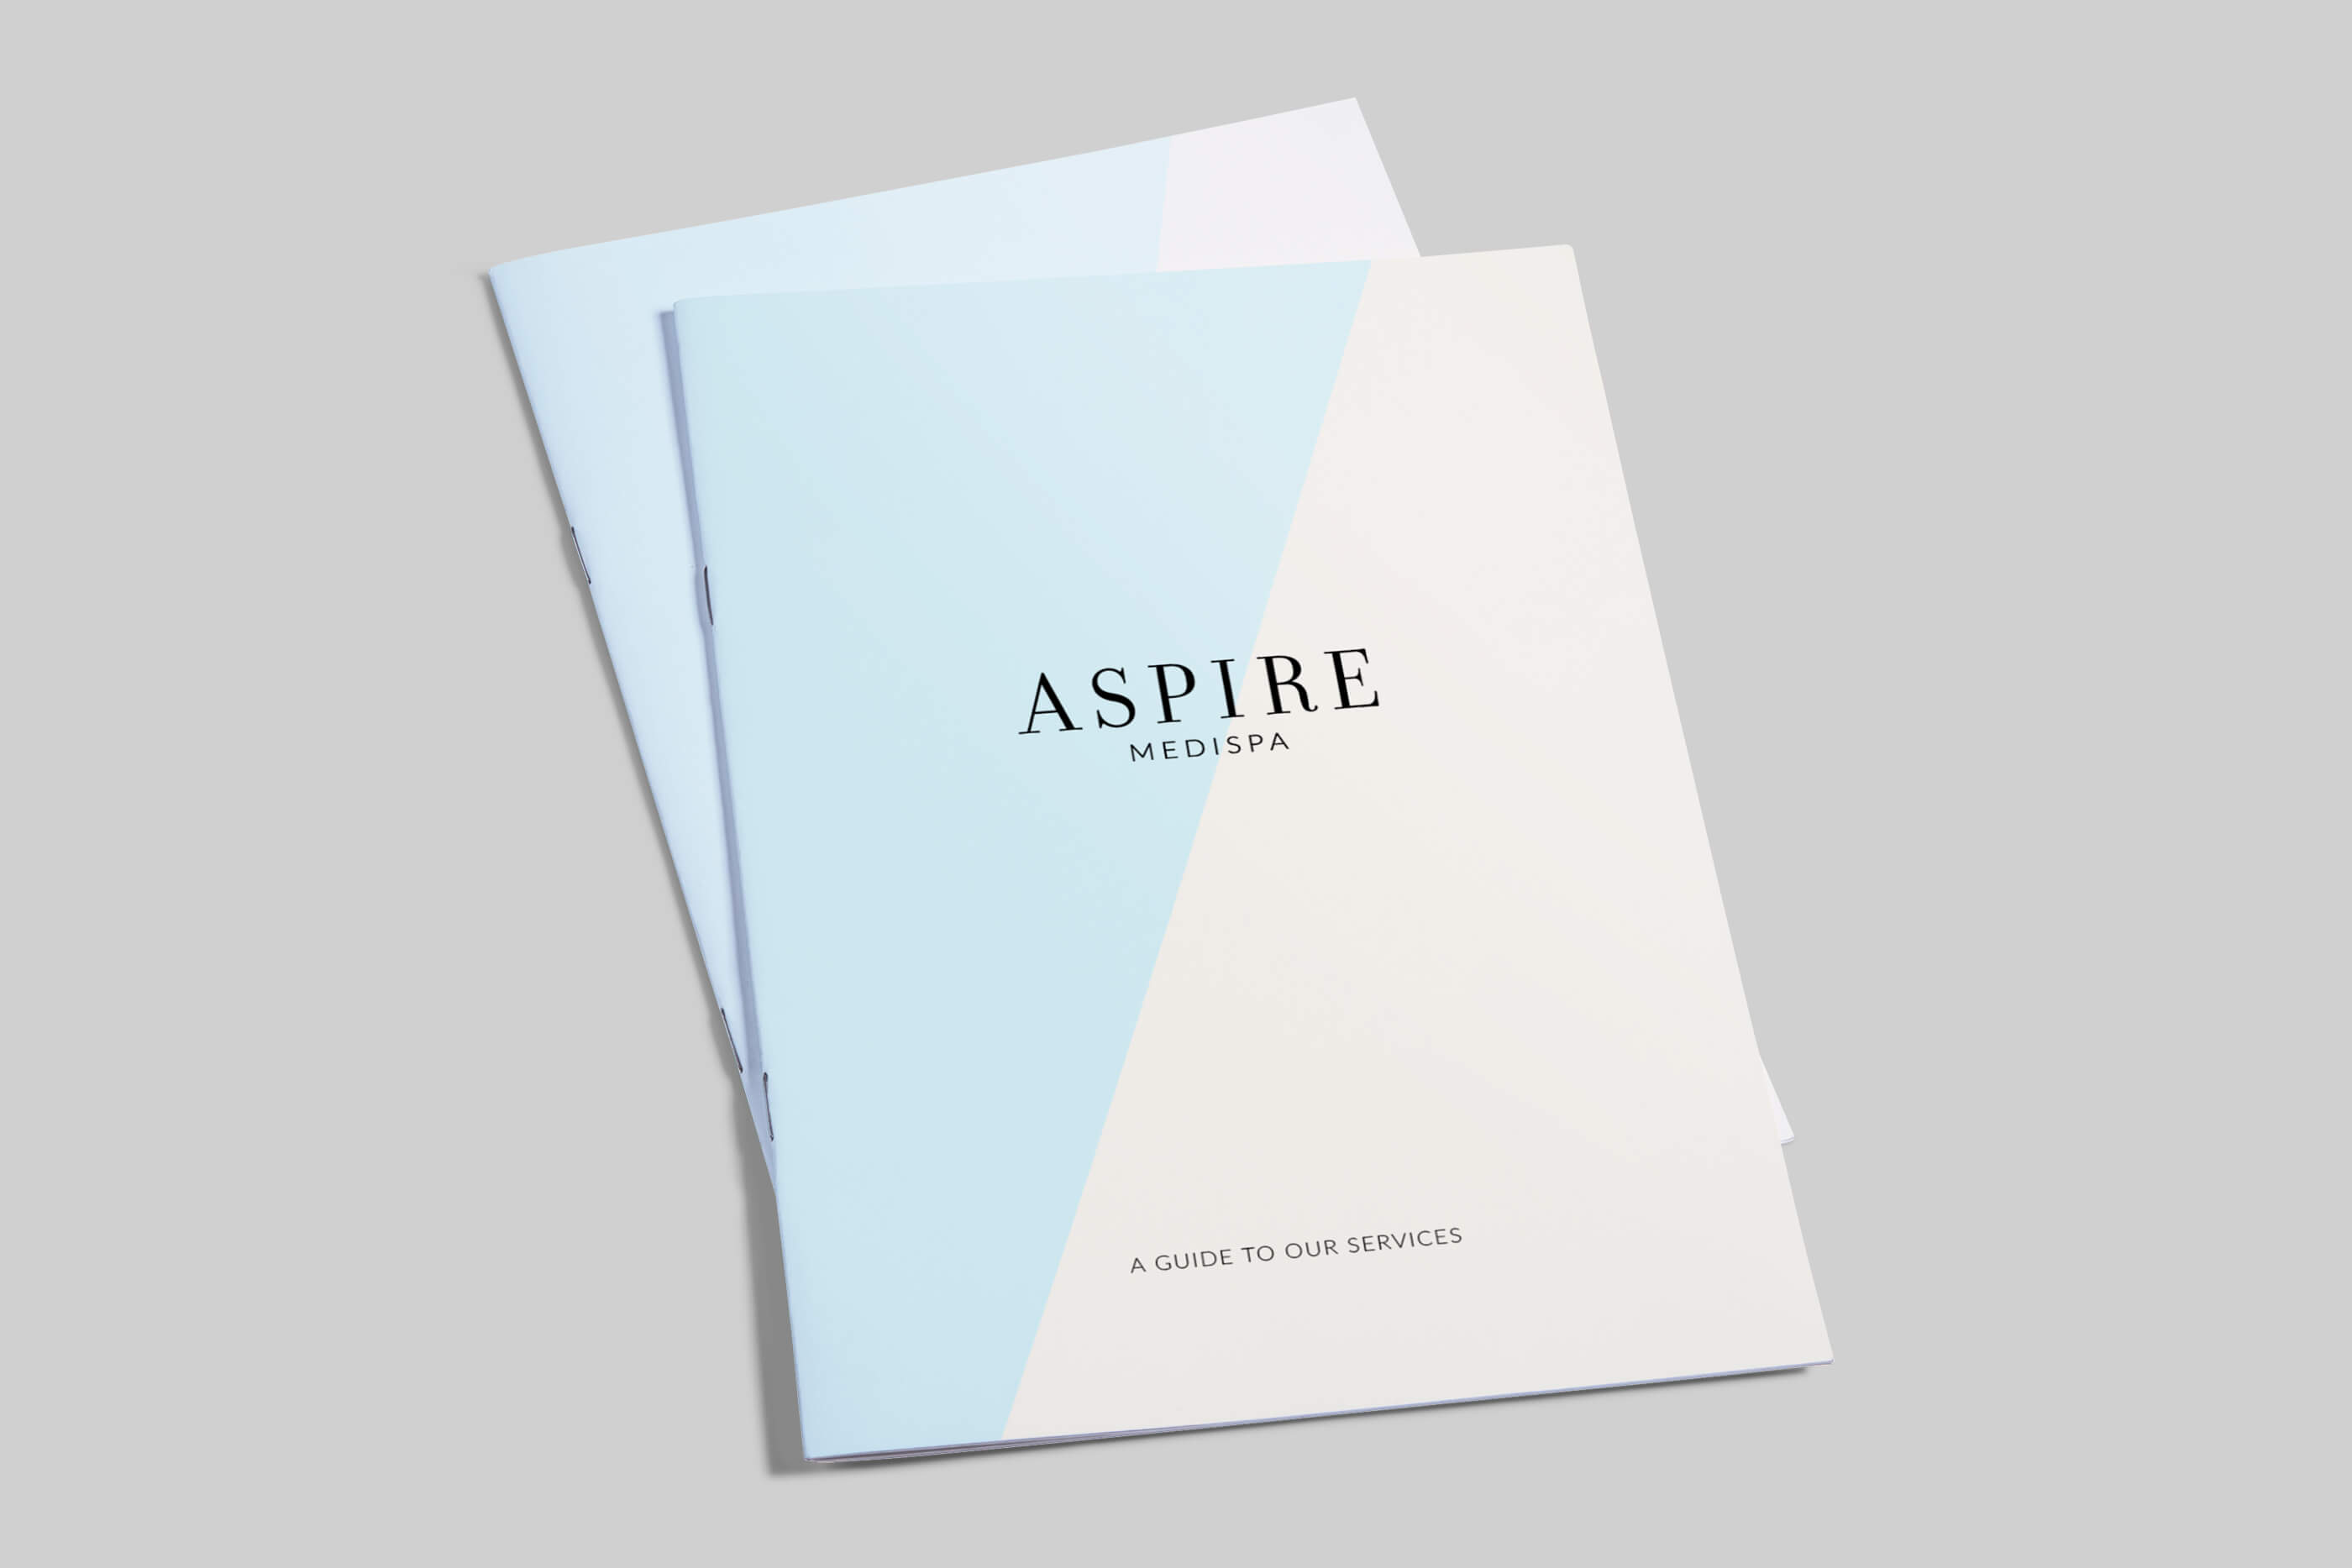 aspire-medispa-guide